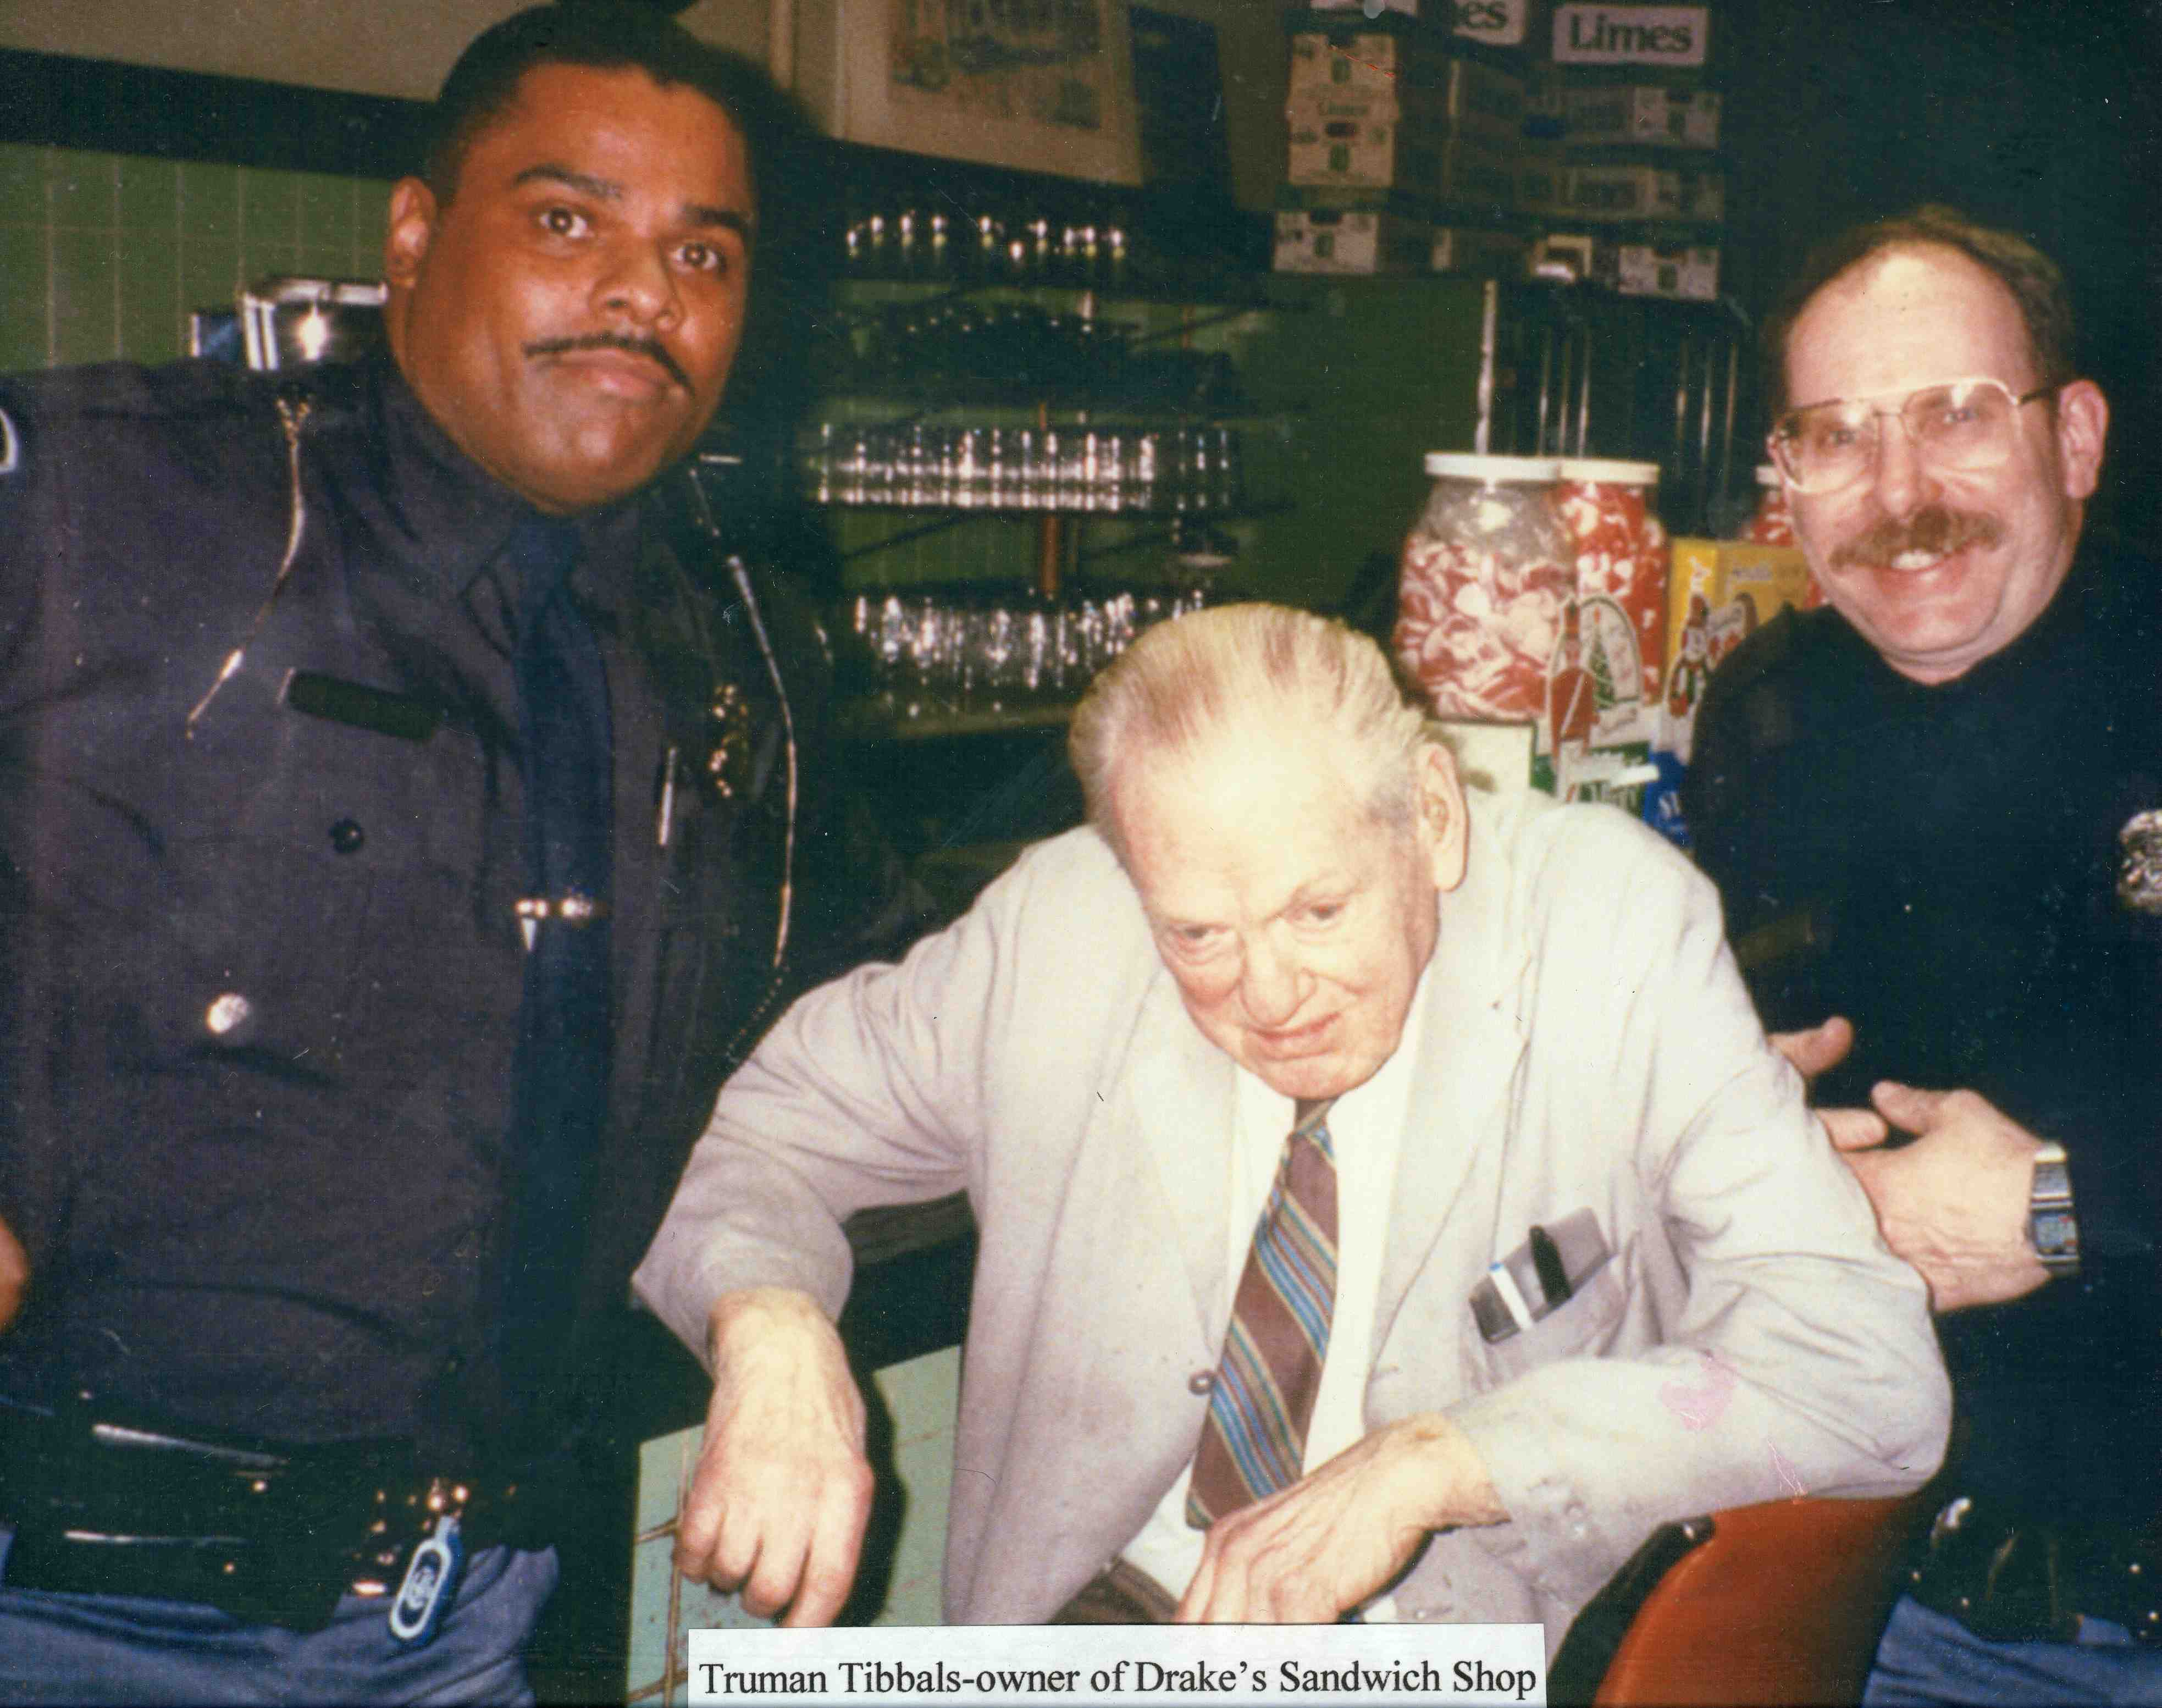 Truman Tibbals, Owner of Drake's Sandwich Shop with Ann Arbor Police Department officers image